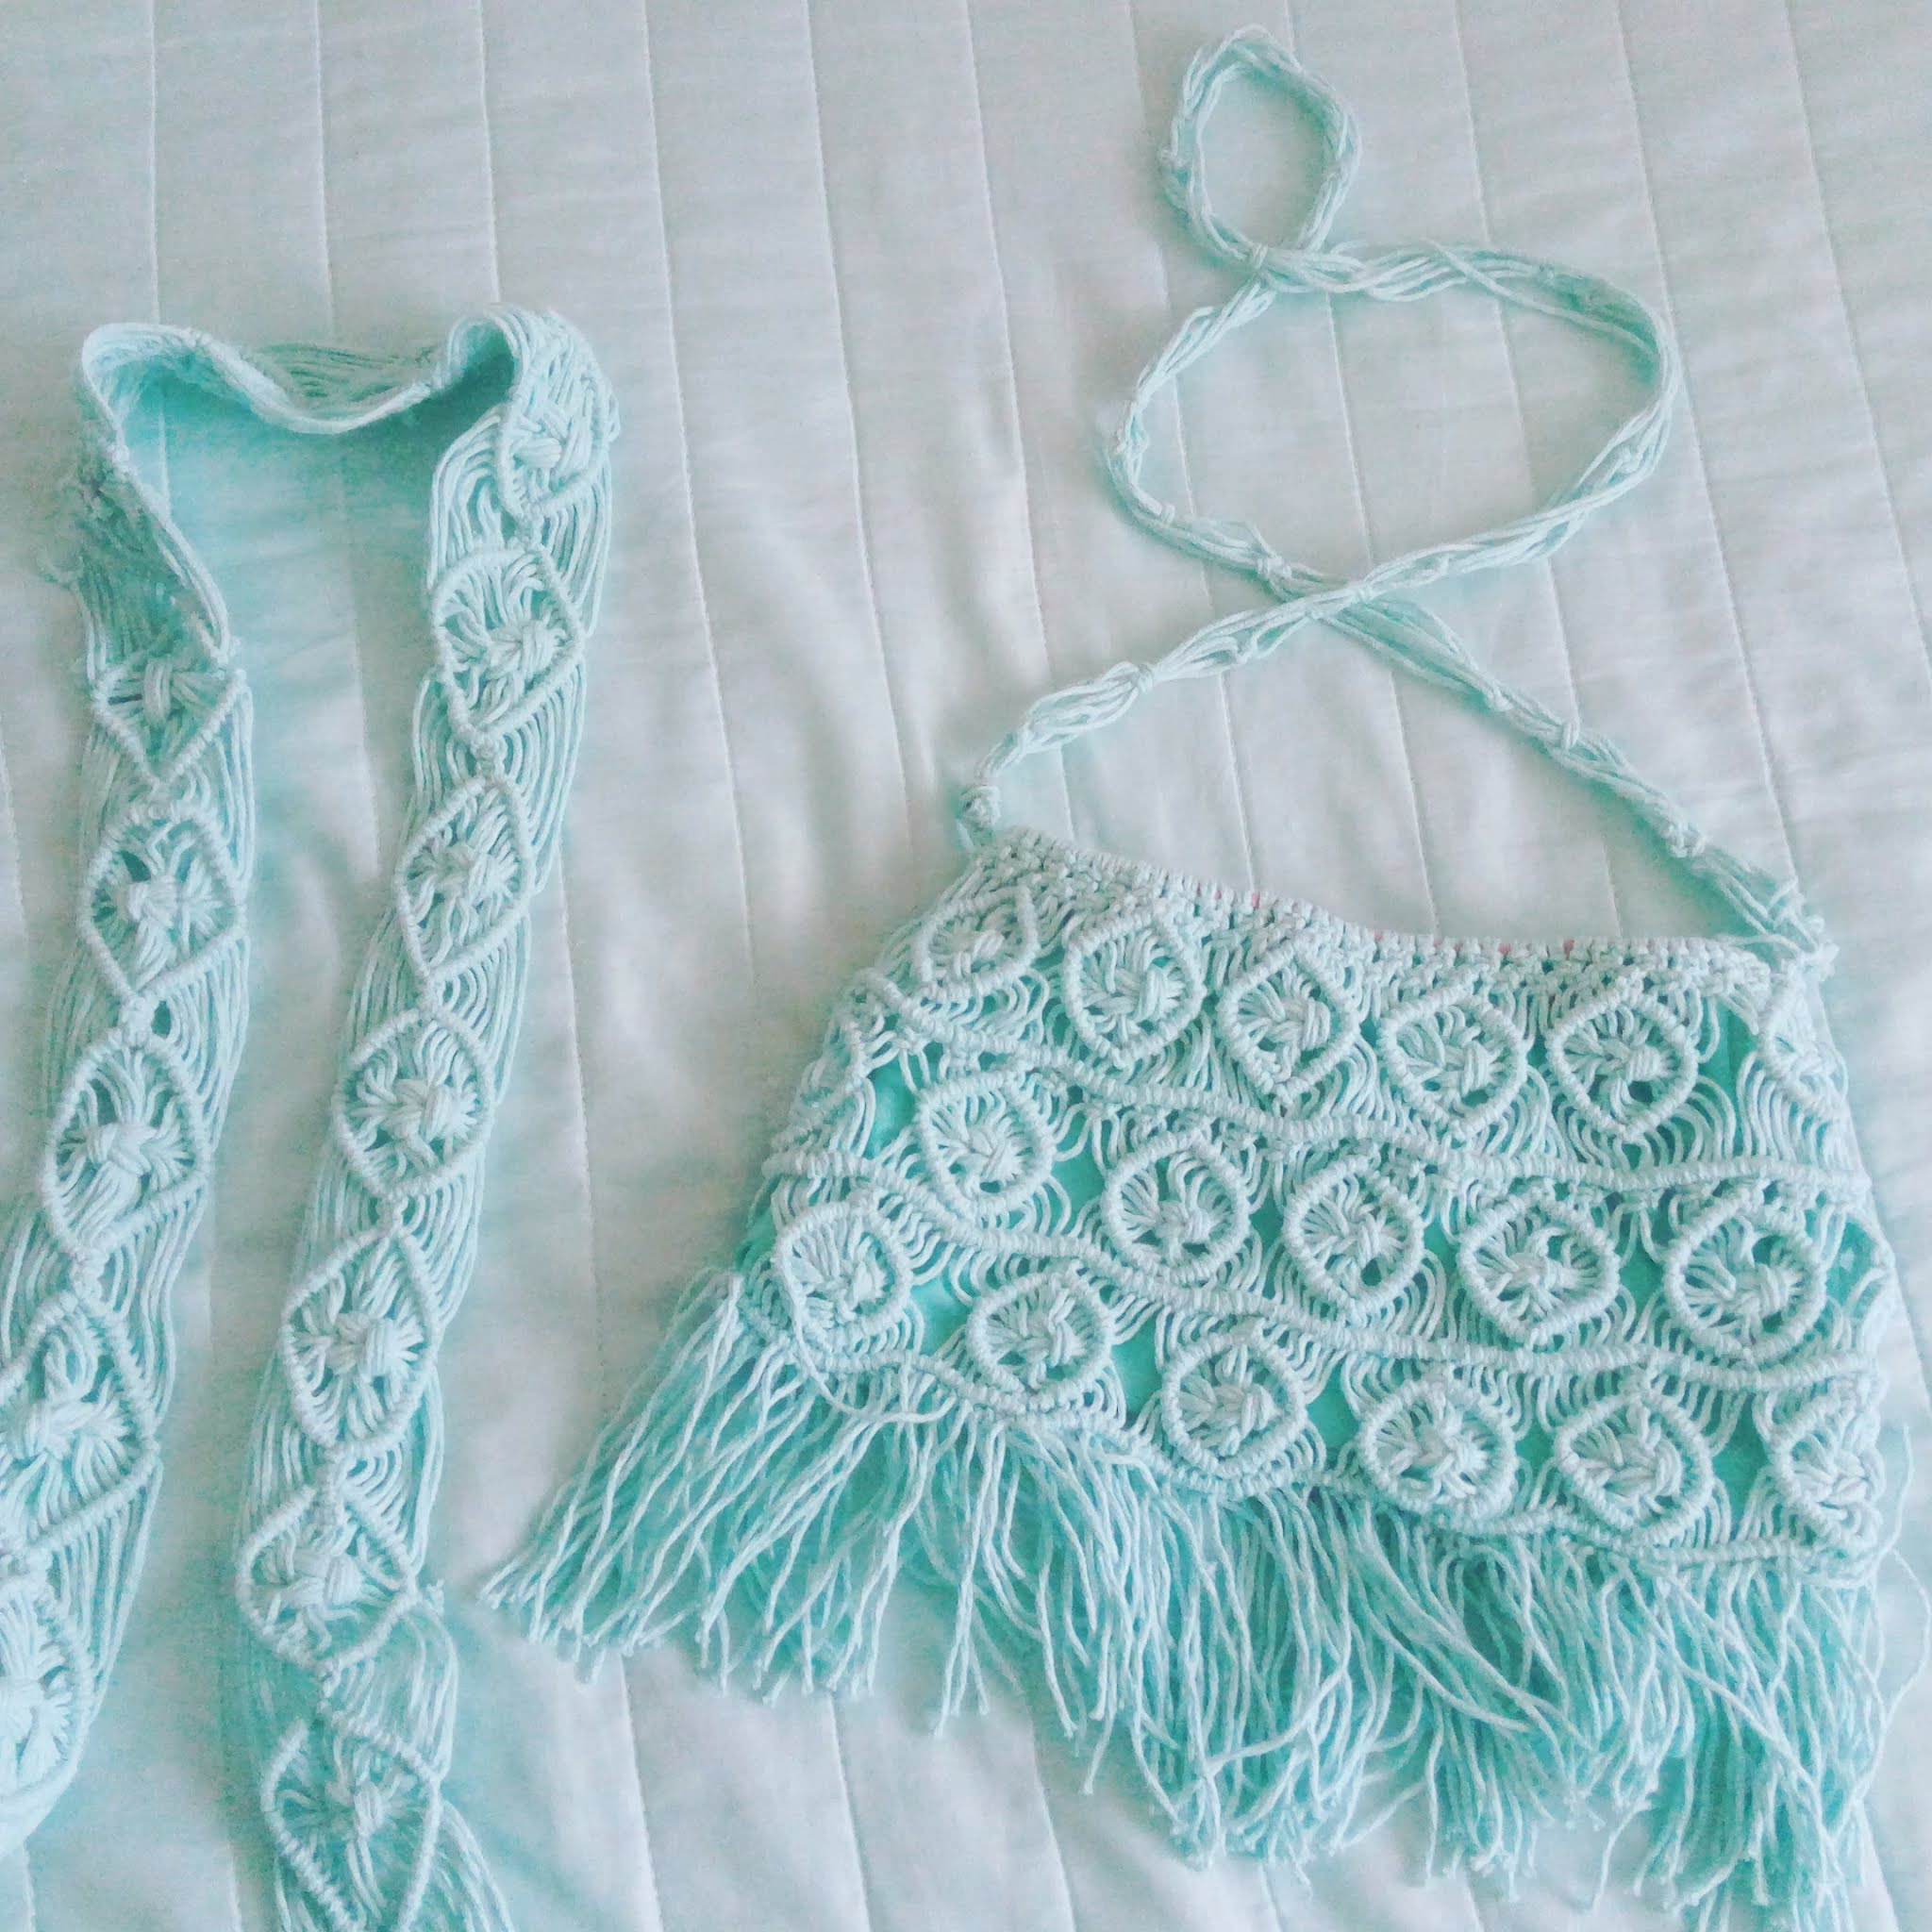 IMG_2020061Women's knitted macrame bag - turquoise color